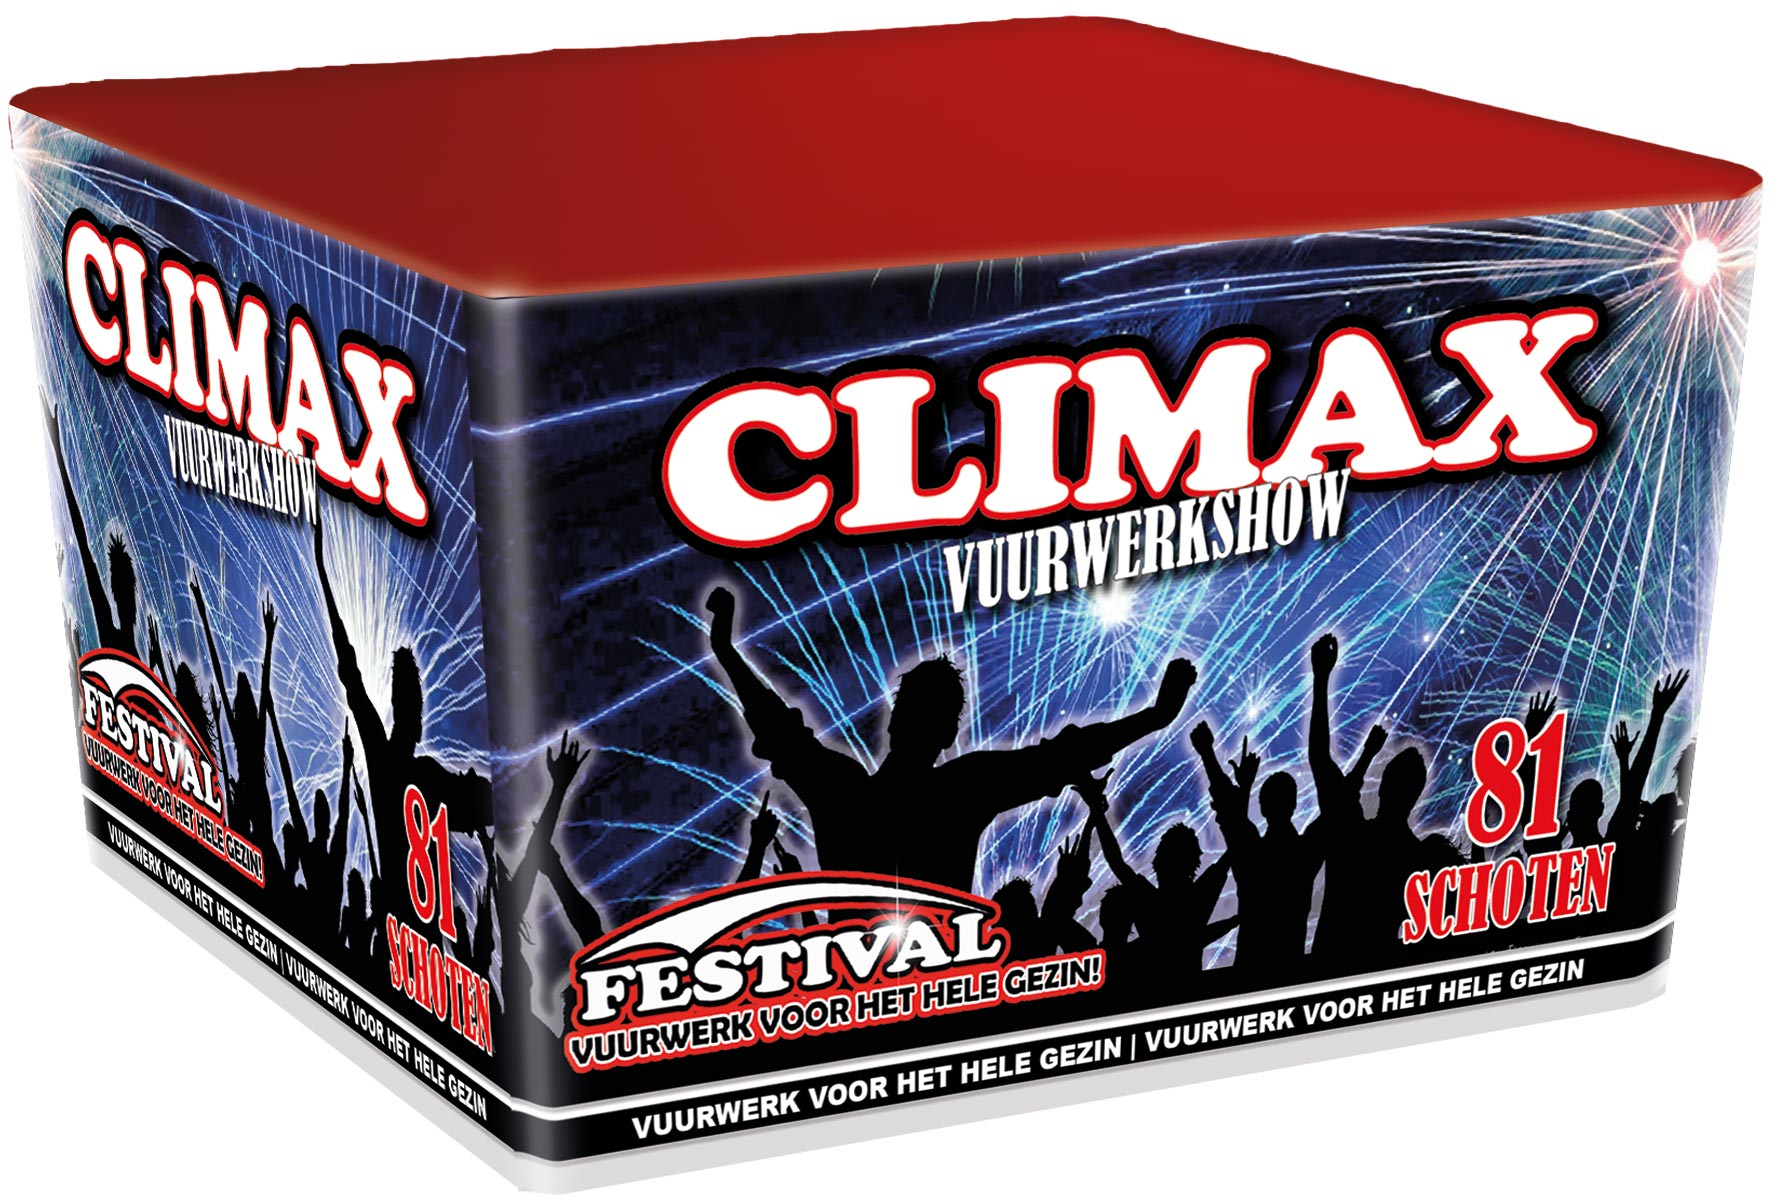 Festival Climax